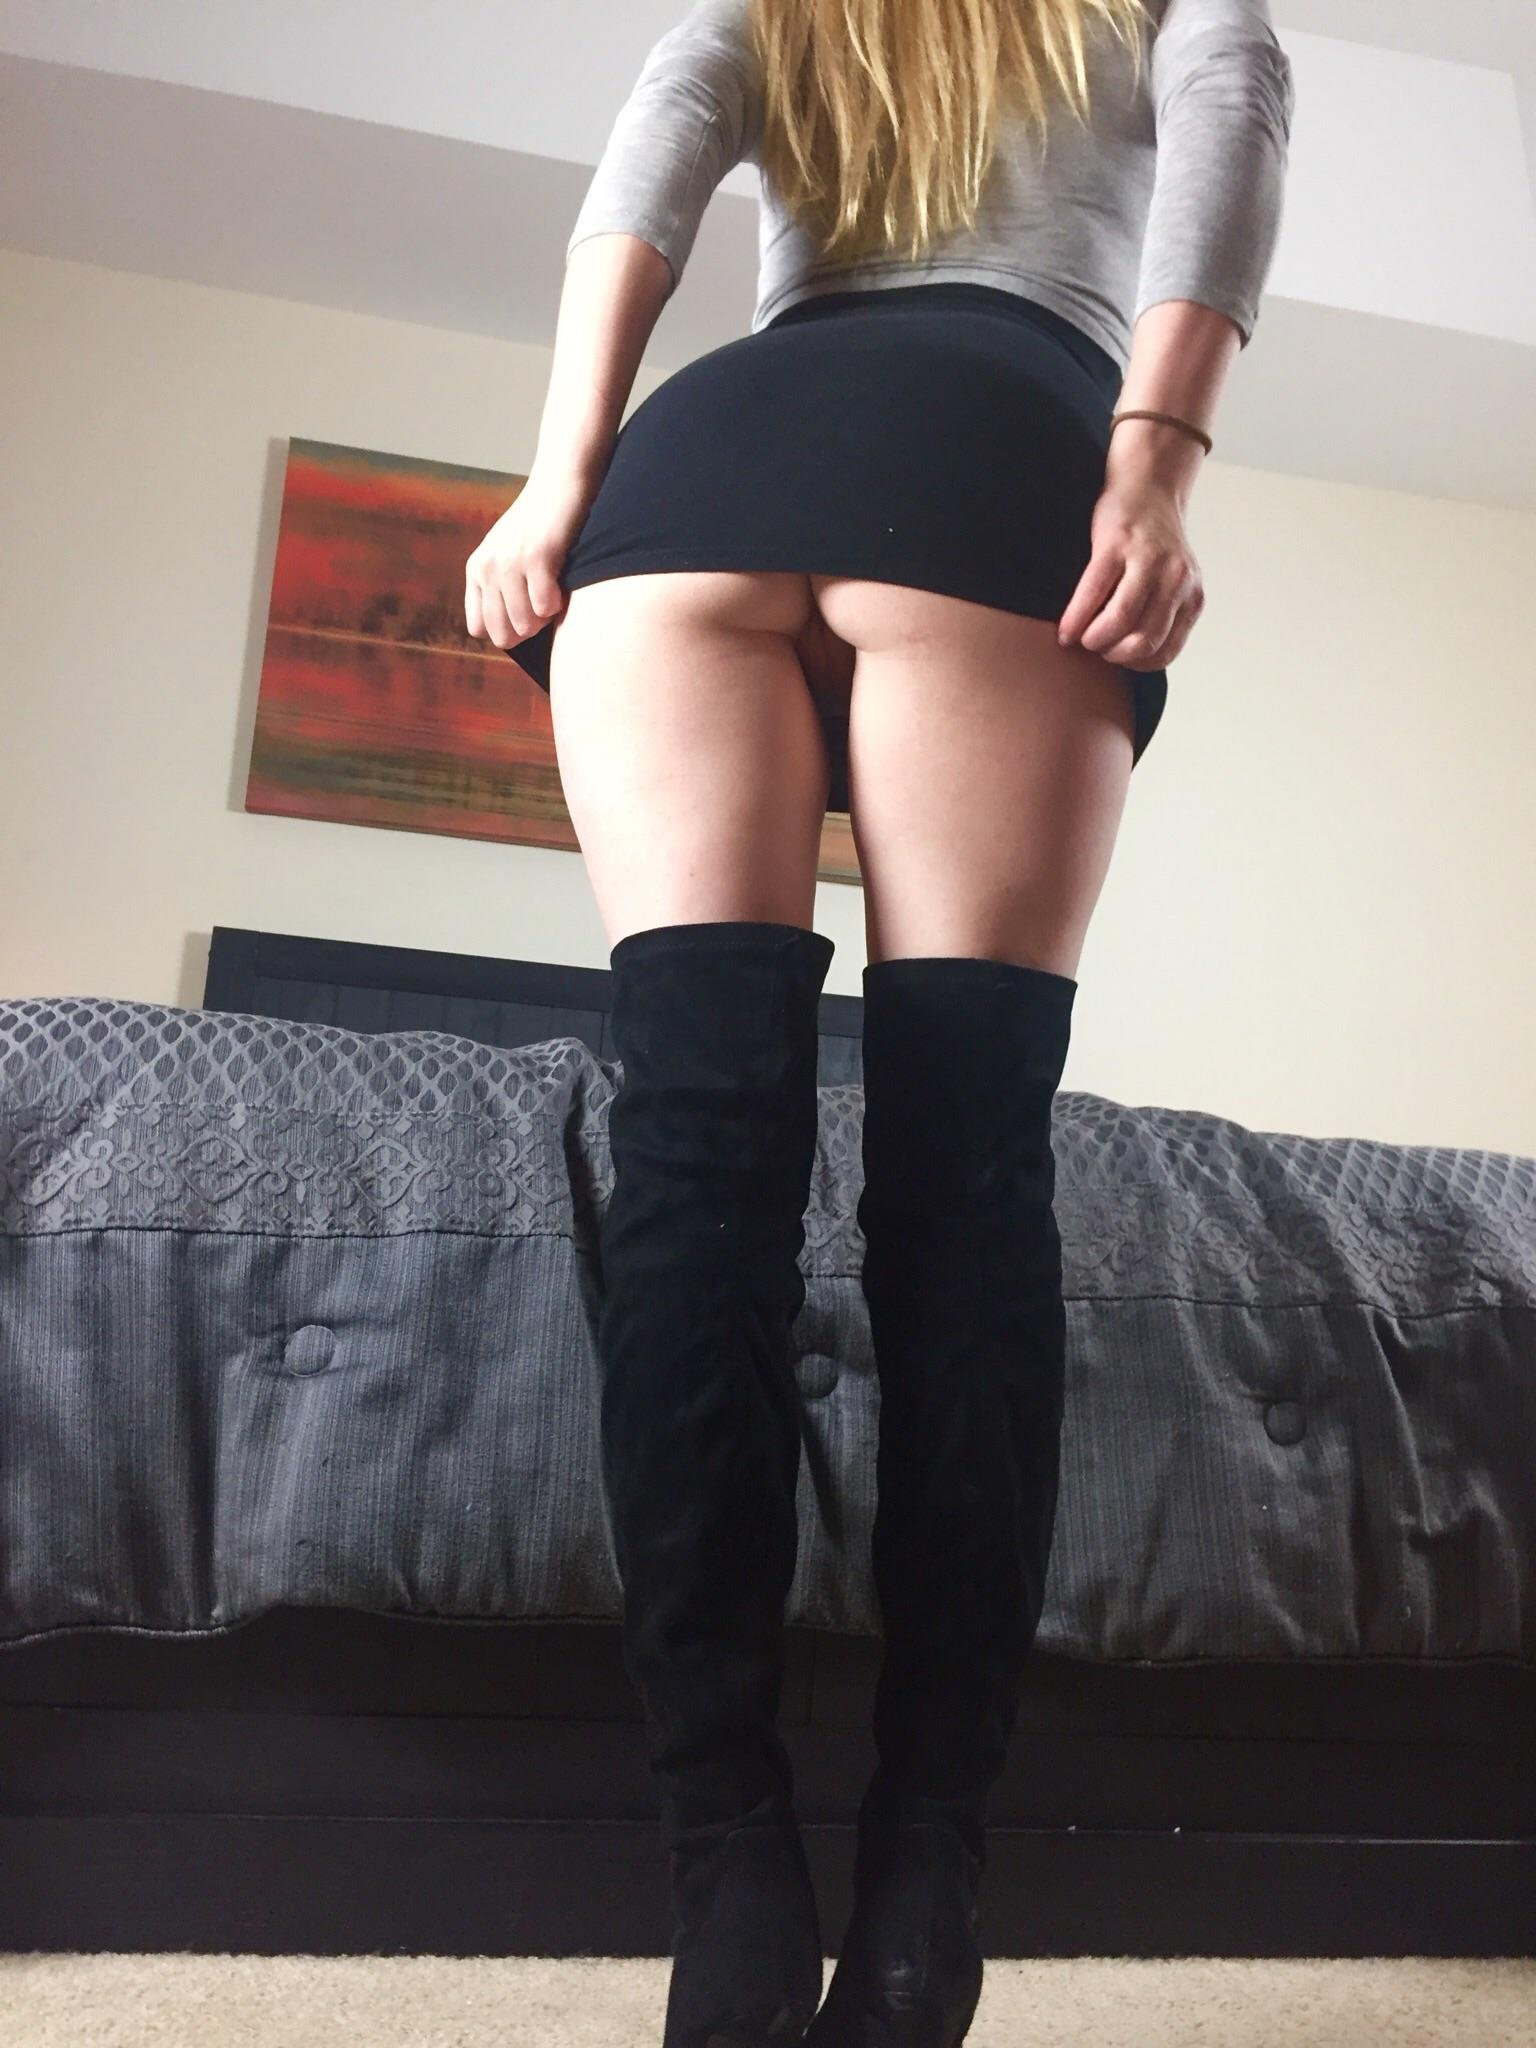 Broke out the fuck me boots [OC]